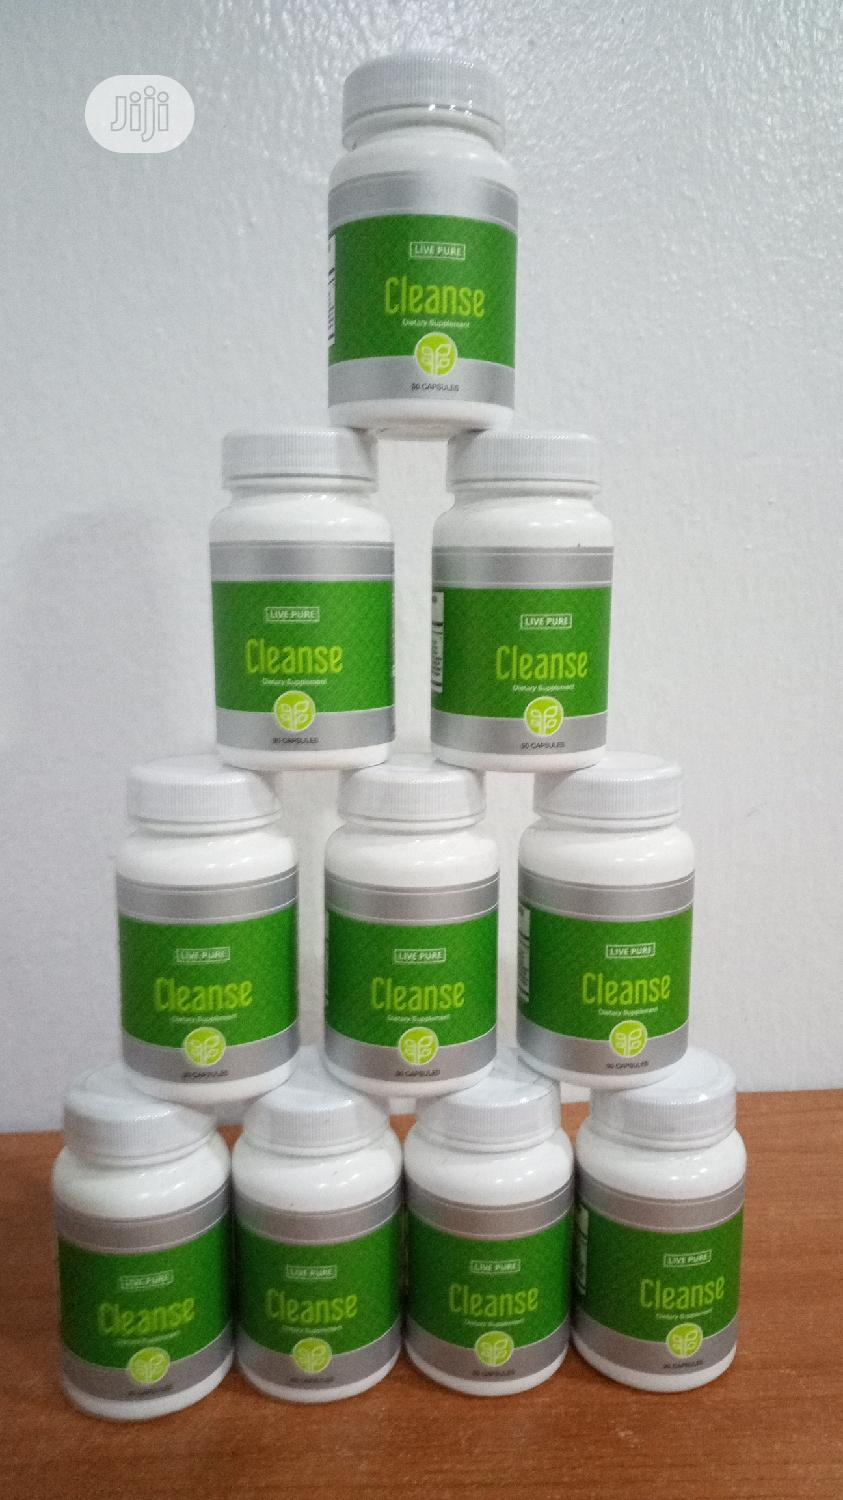 Cleanse - Natural Full Body Detox and Cleanser | Vitamins & Supplements for sale in Oshodi, Lagos State, Nigeria